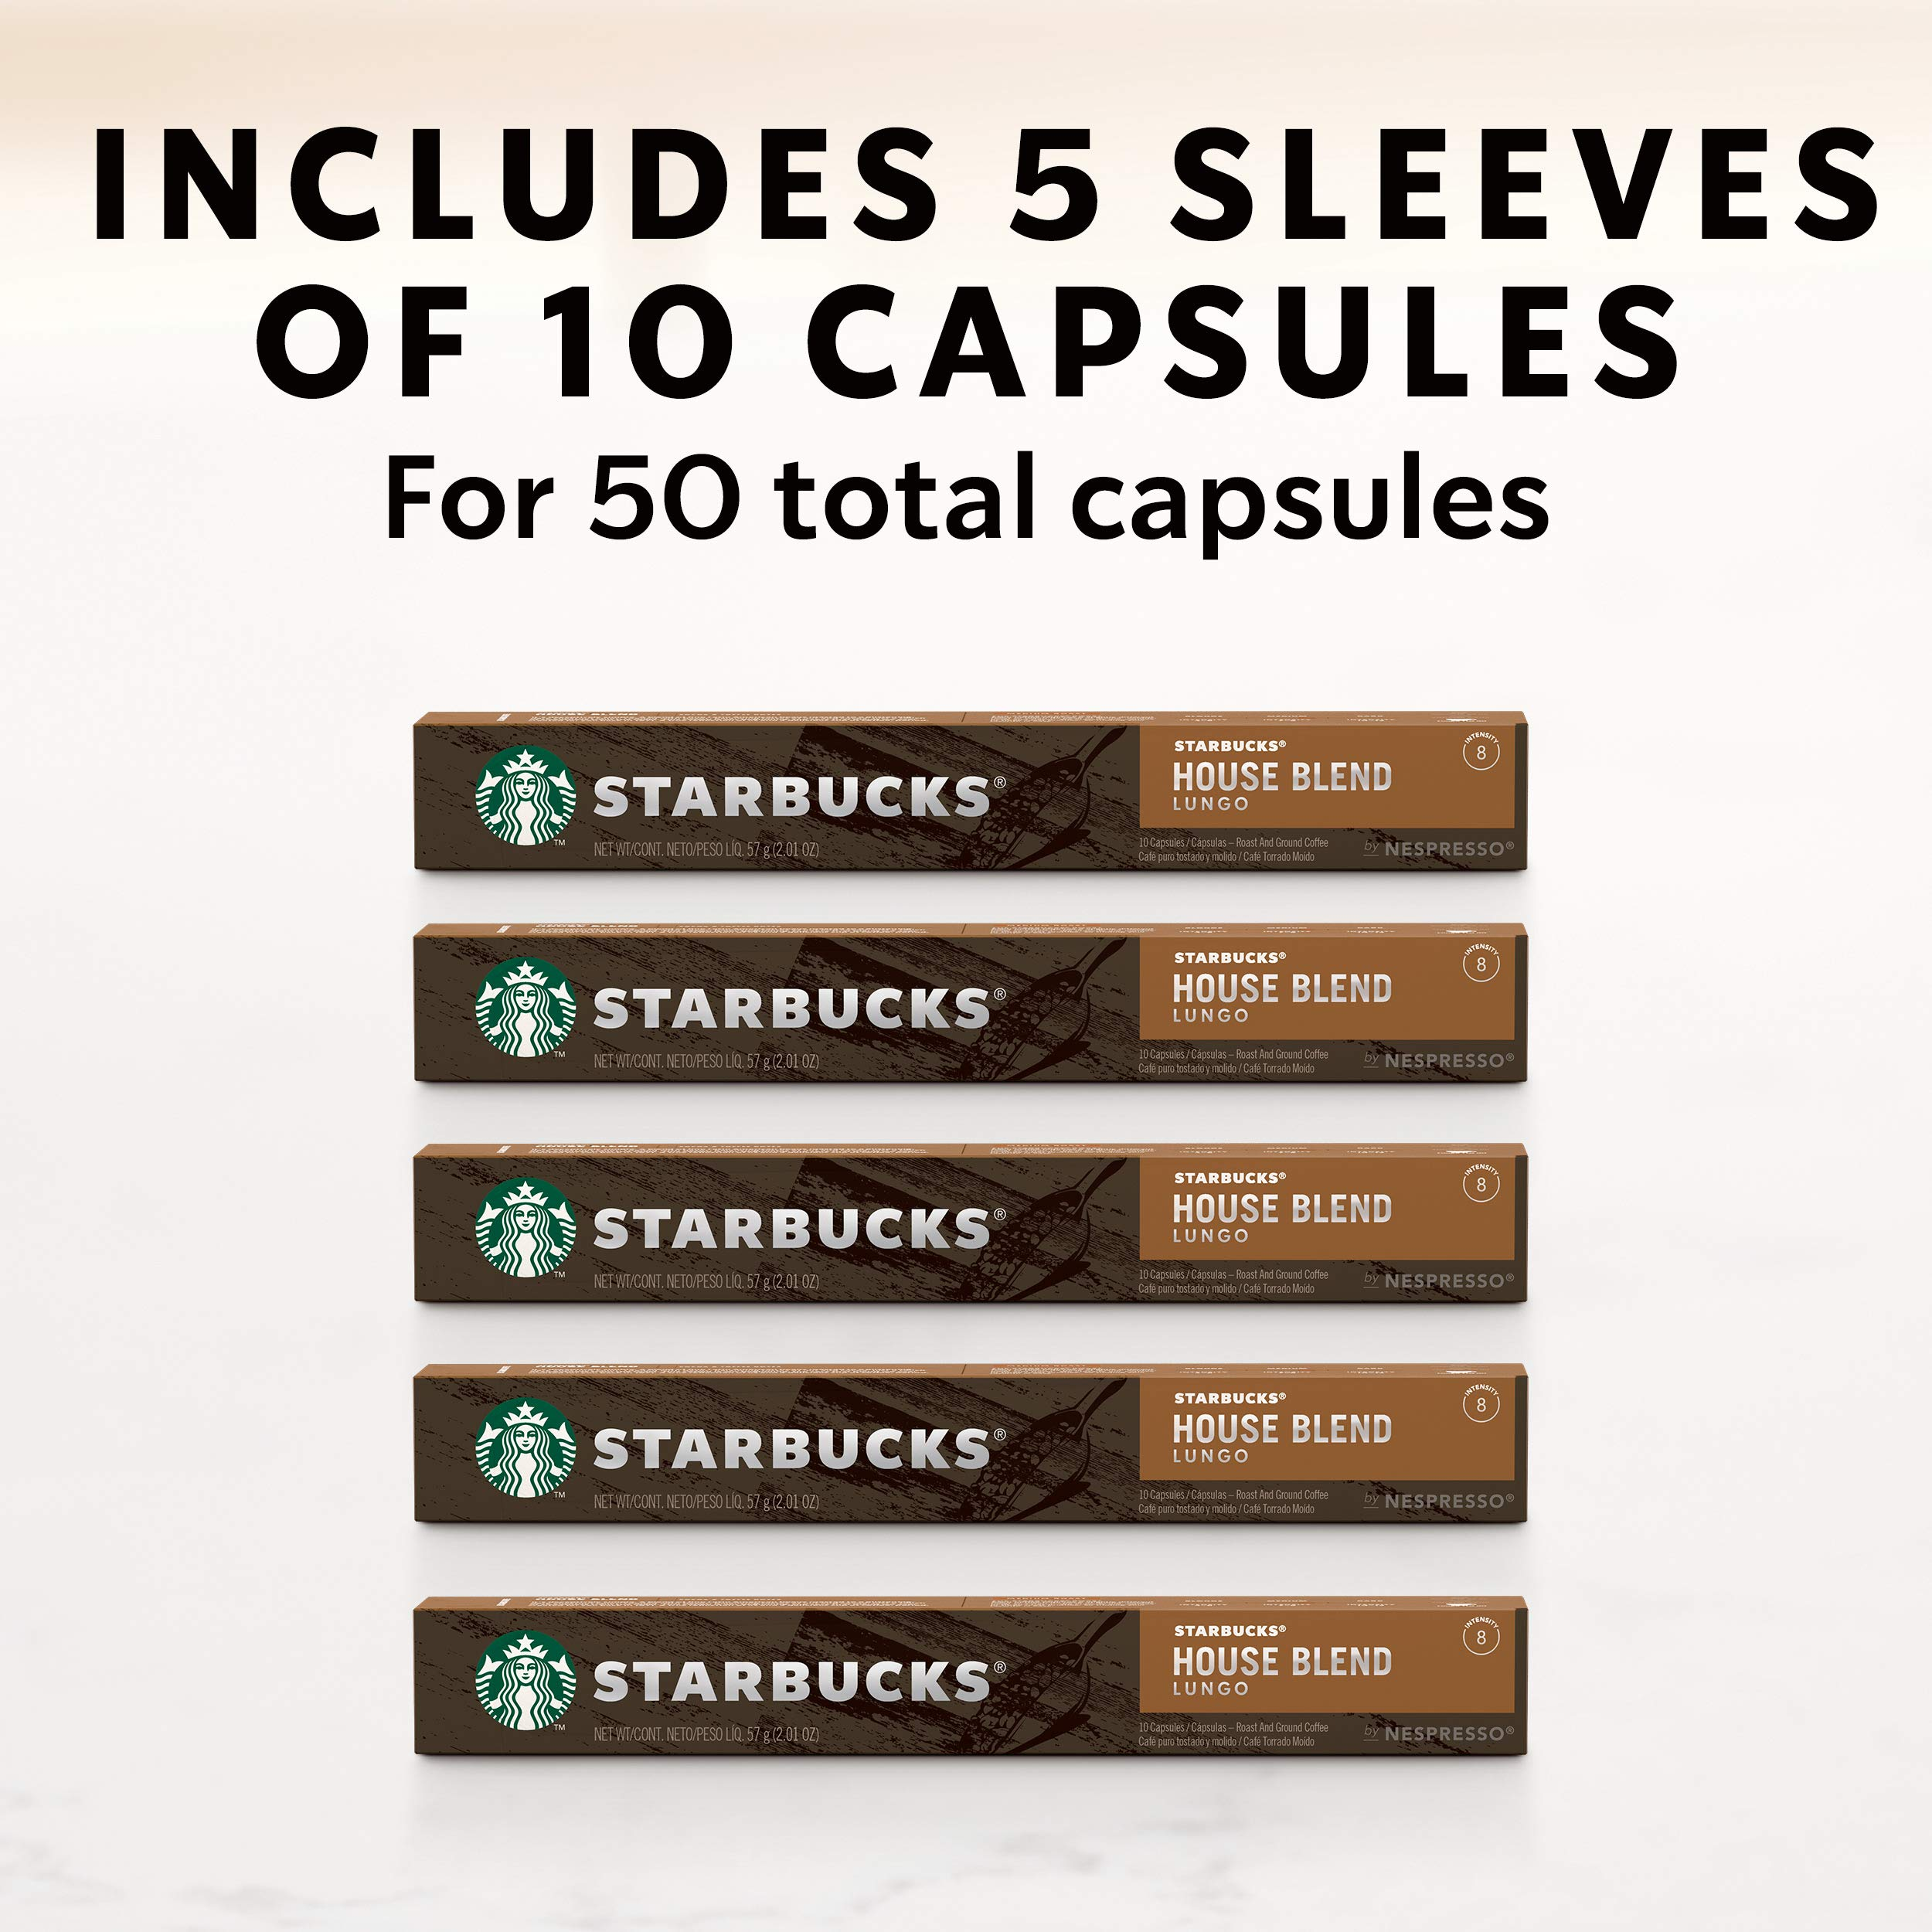 Starbucks by Nespresso, House Blend (50-count single serve capsules, compatible with Nespresso Original Line System) by Starbucks for Nespresso (Image #7)